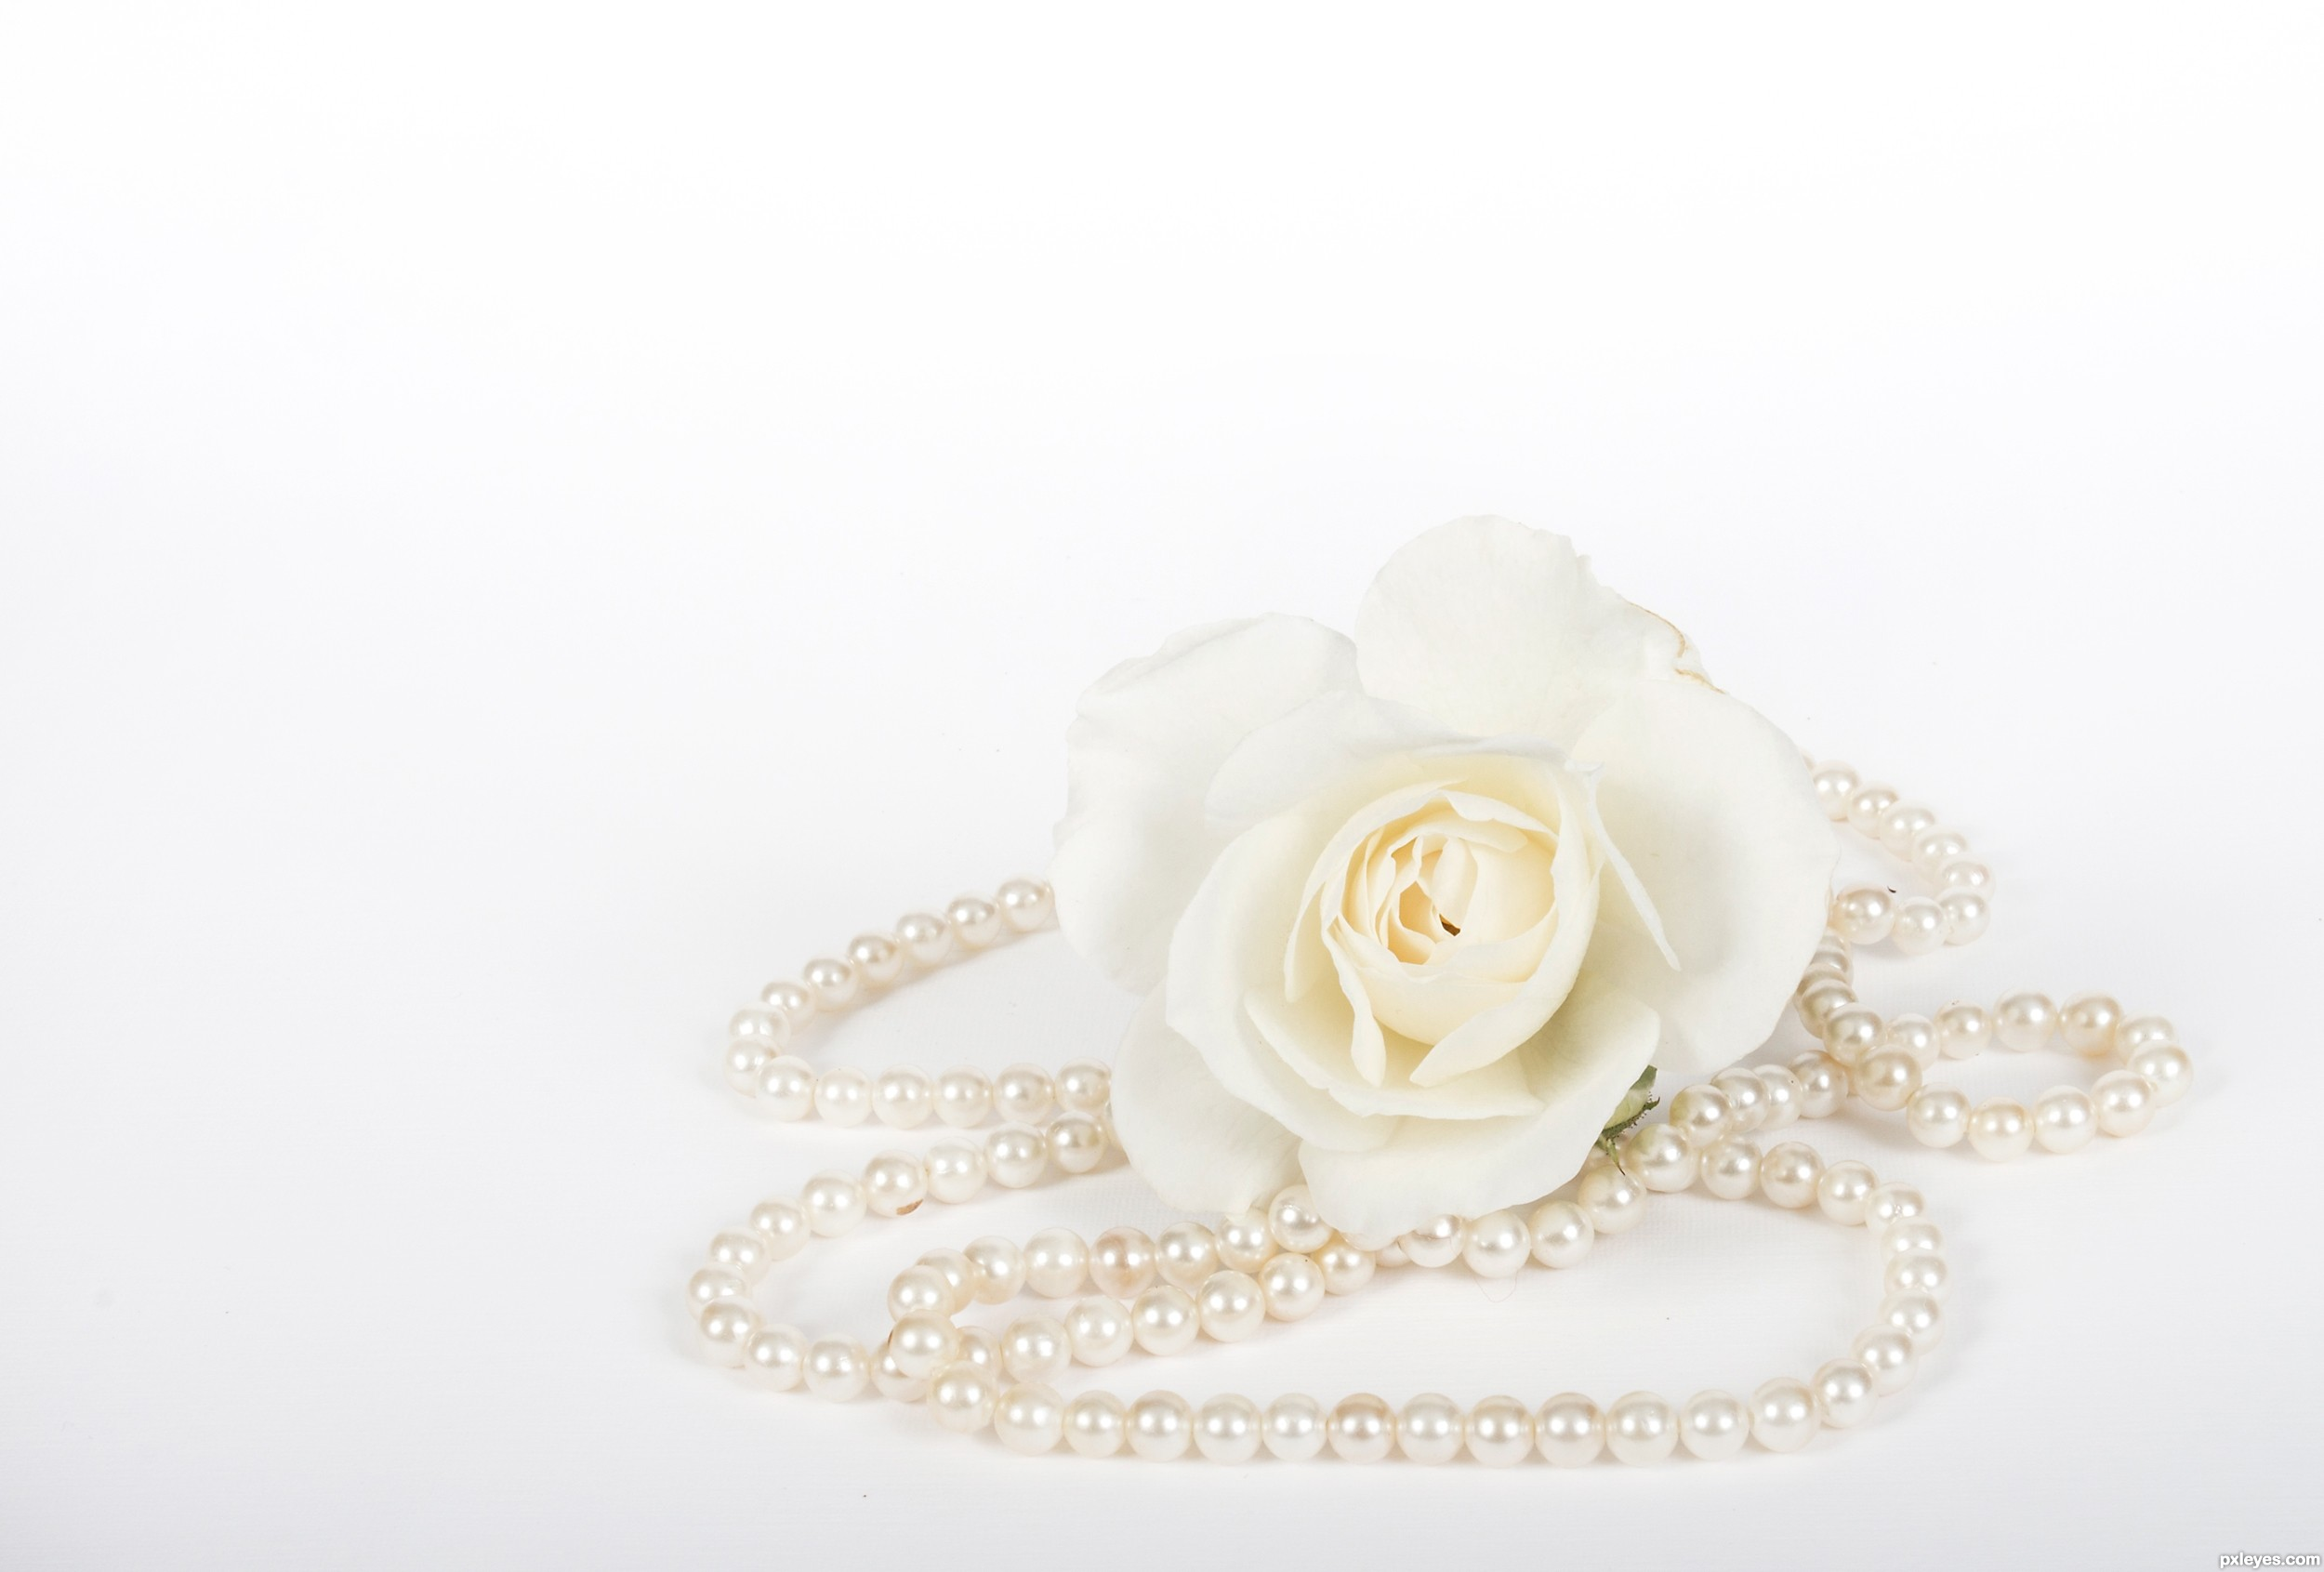 roses and pearls - photo #6